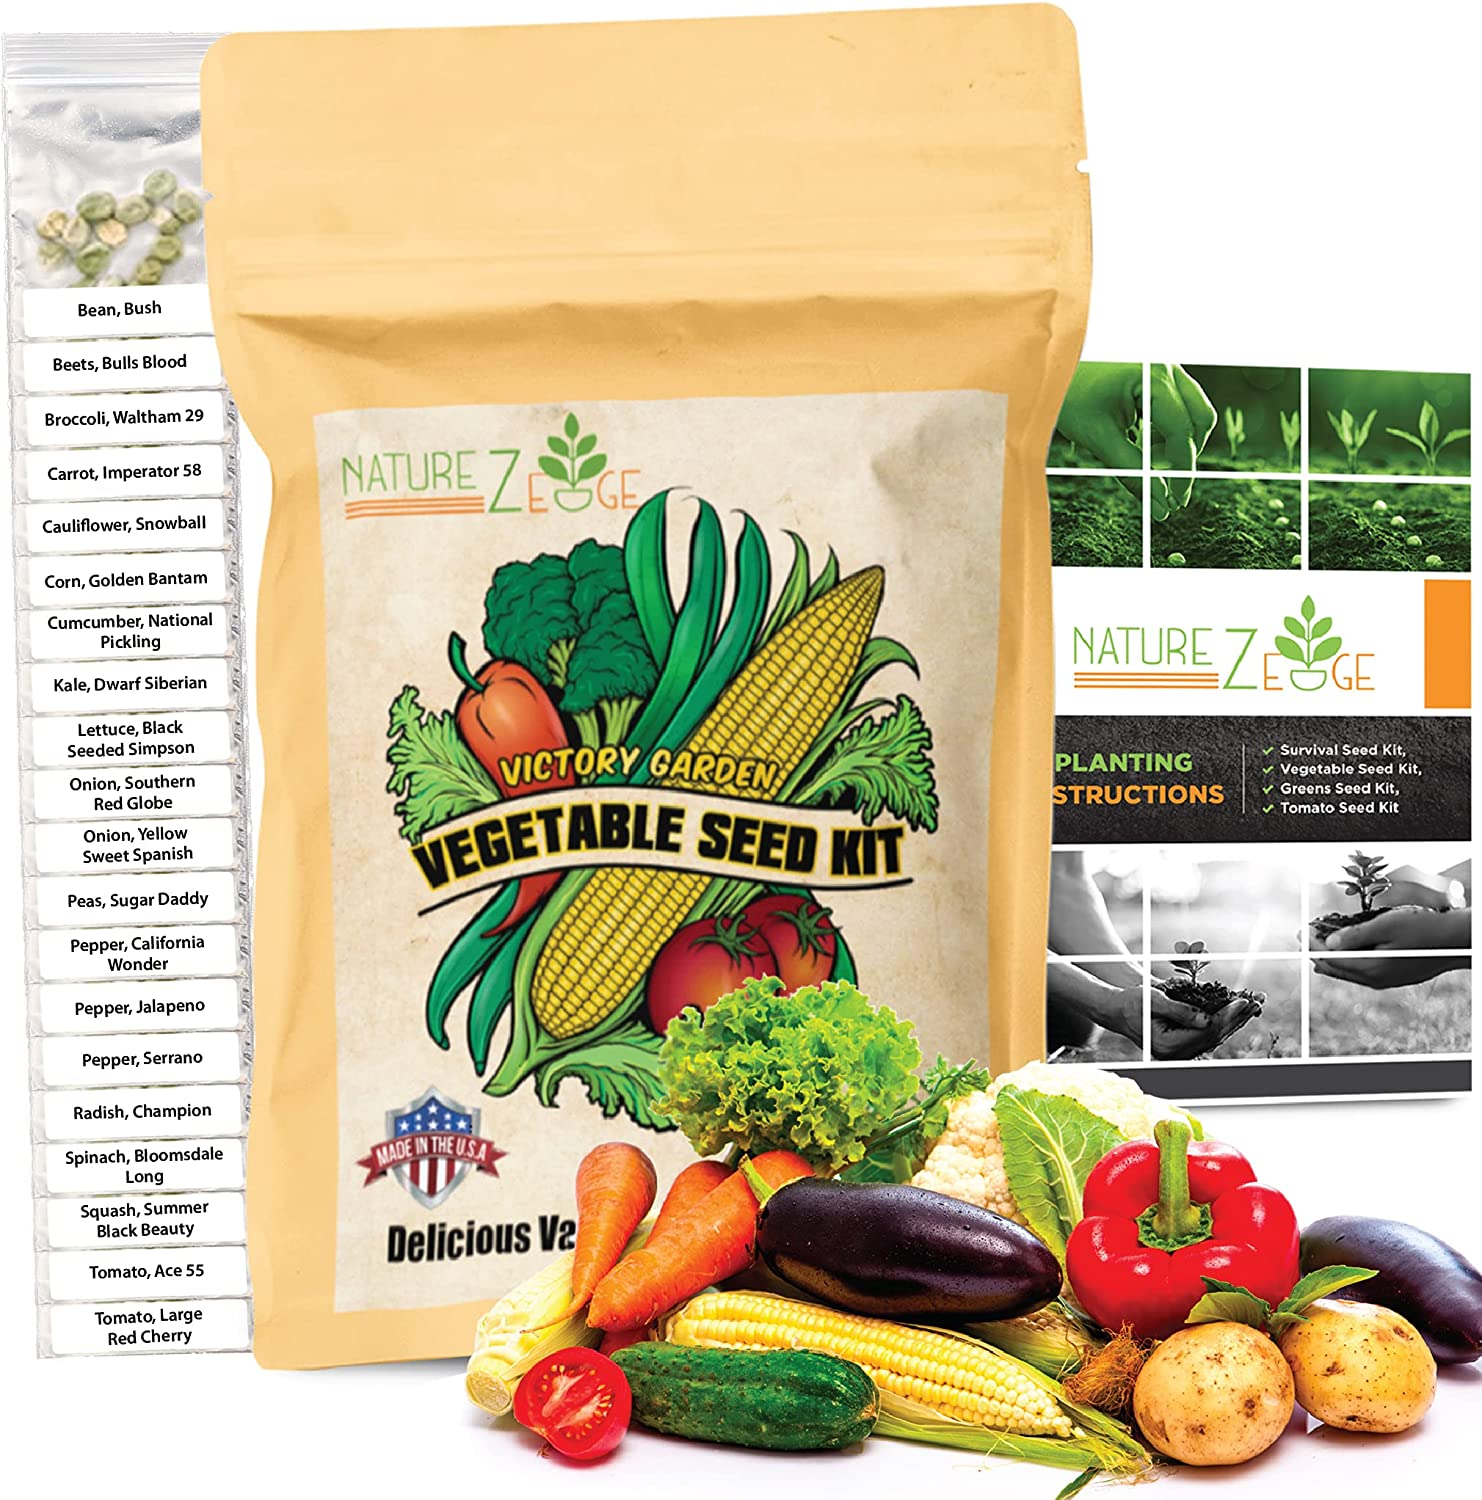 Vegetable Seeds- 5000 Seeds for Planting Vegetables, 20 Varieties of Non-GMO Plant Seeds, Tomato Seeds, Lettuce, Sugar Snap Peas, Green Bean Seeds, Peppers, Carrots, Cucumber, Onion and More.